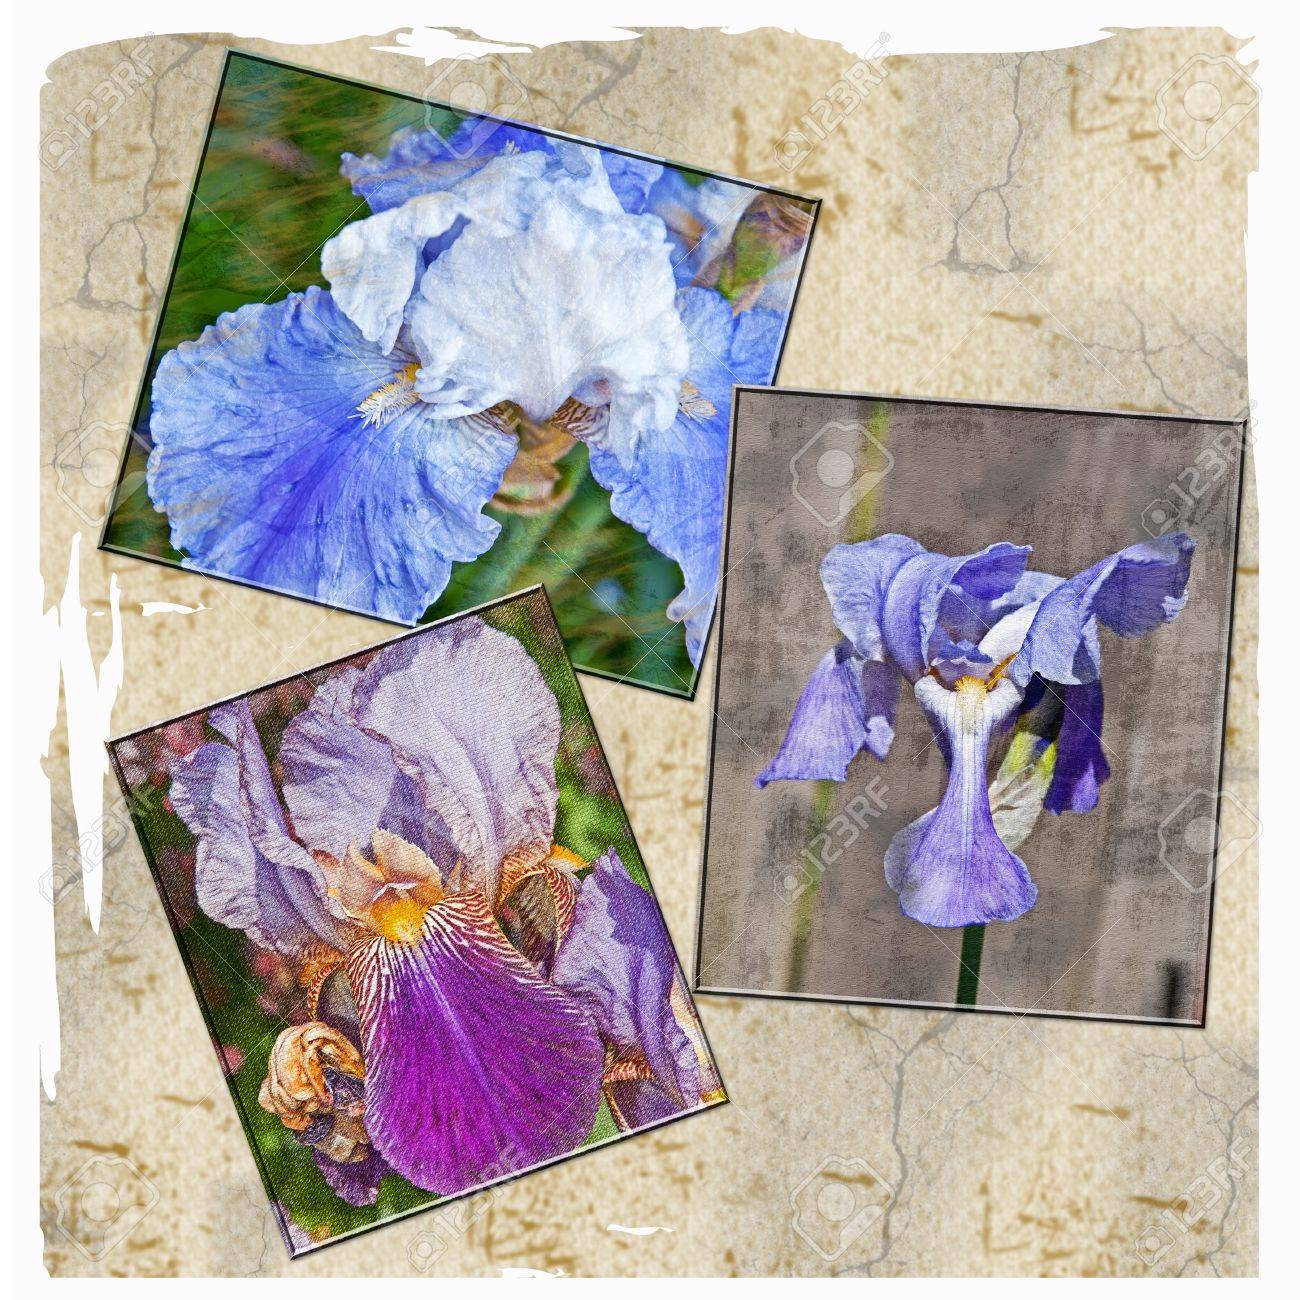 This Is A Collage Of Textured Iris Flowers Bearded And Japanese